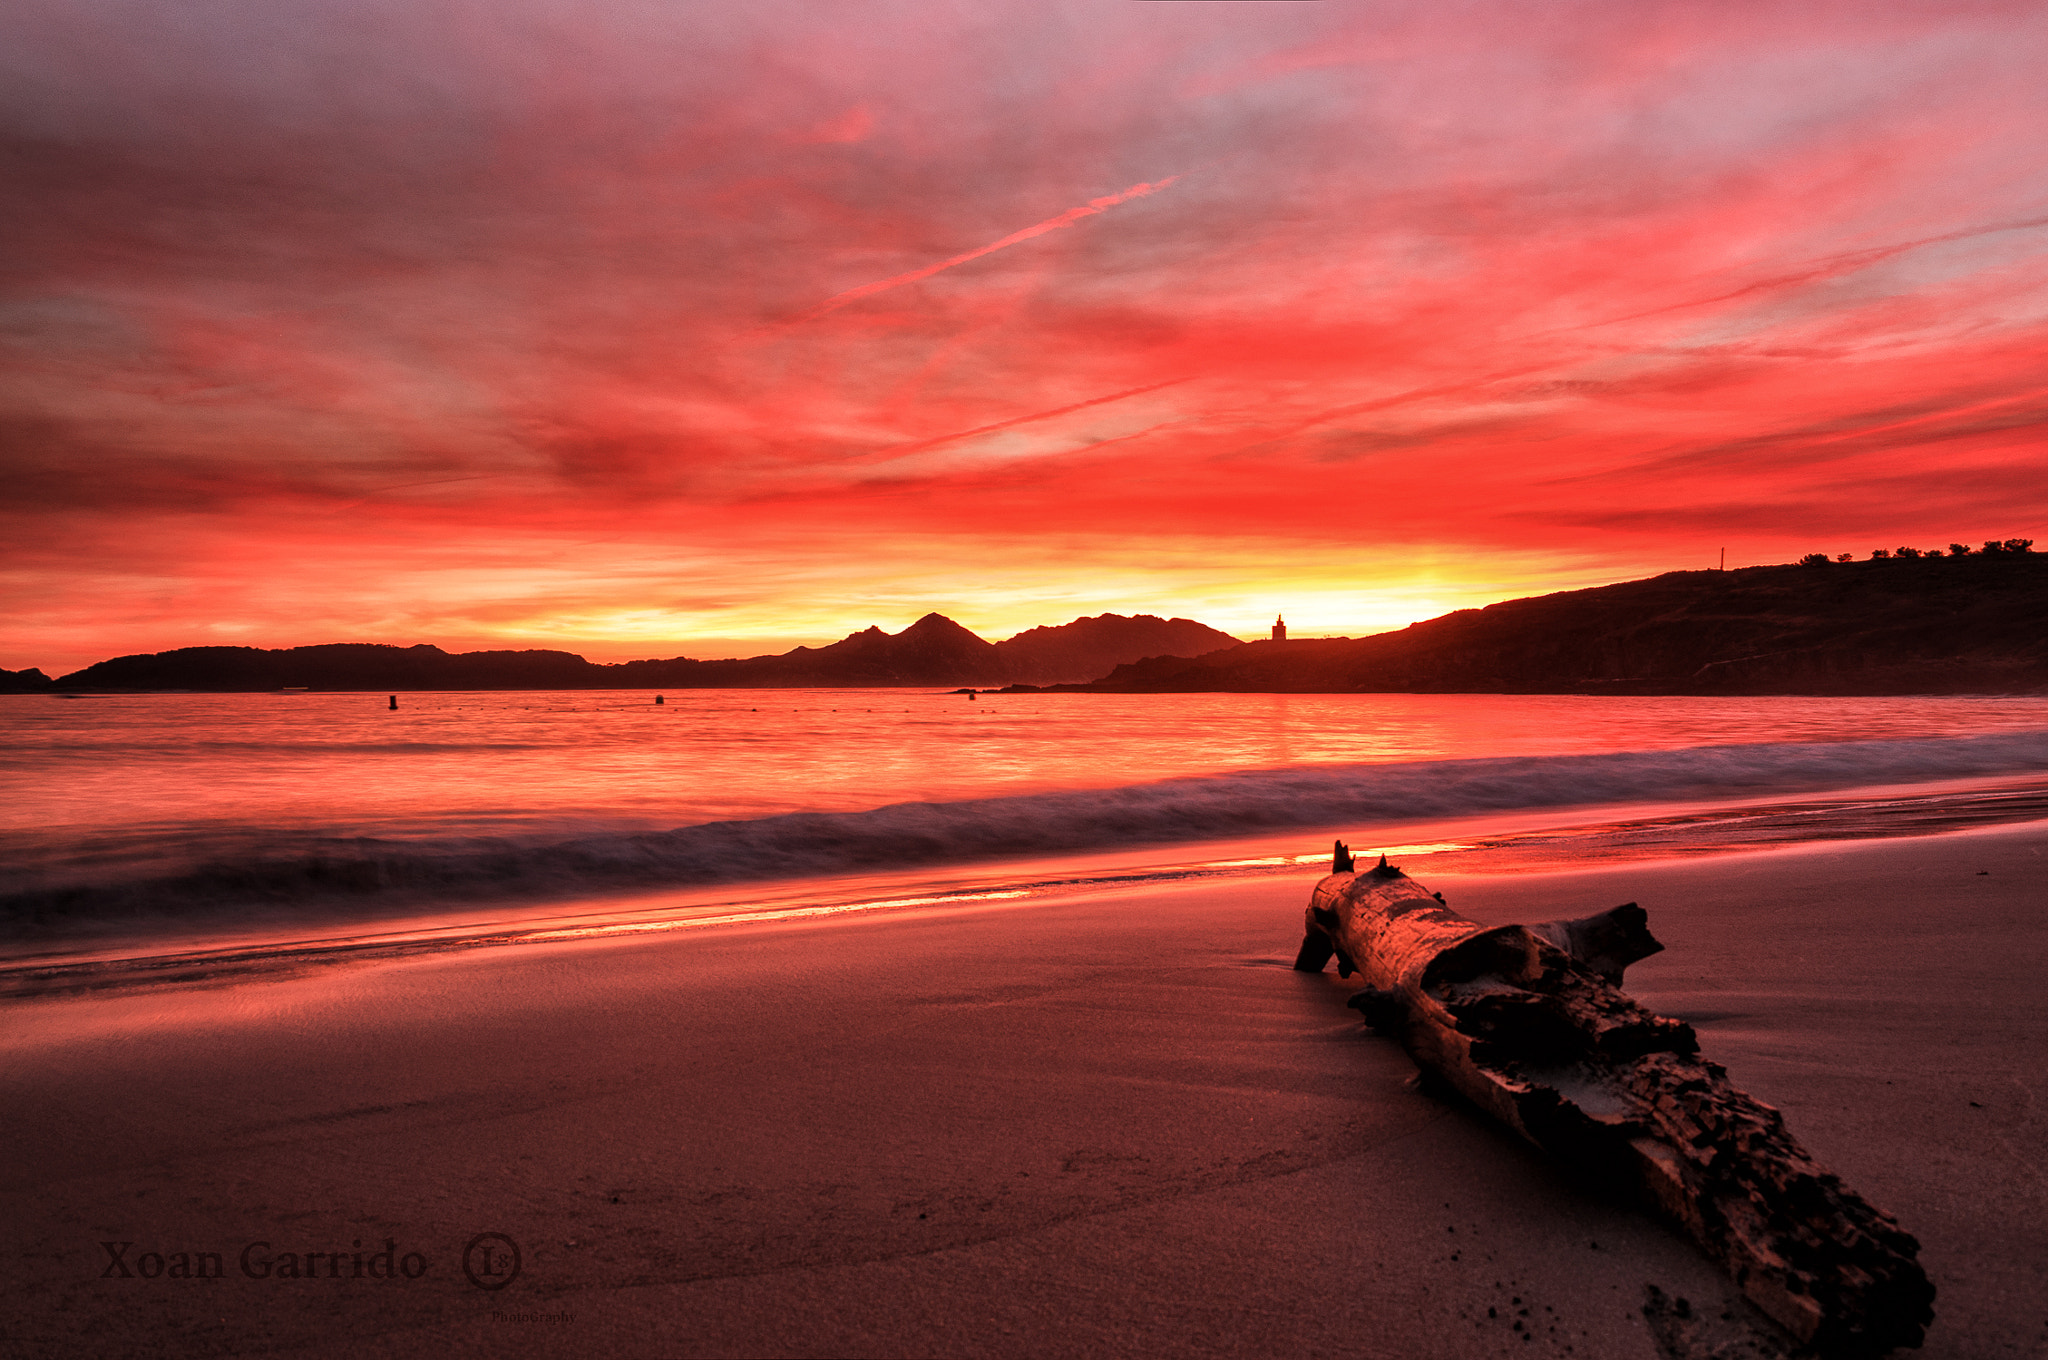 Photograph Rojos en Playa Melide by Xoan C. Garrido on 500px